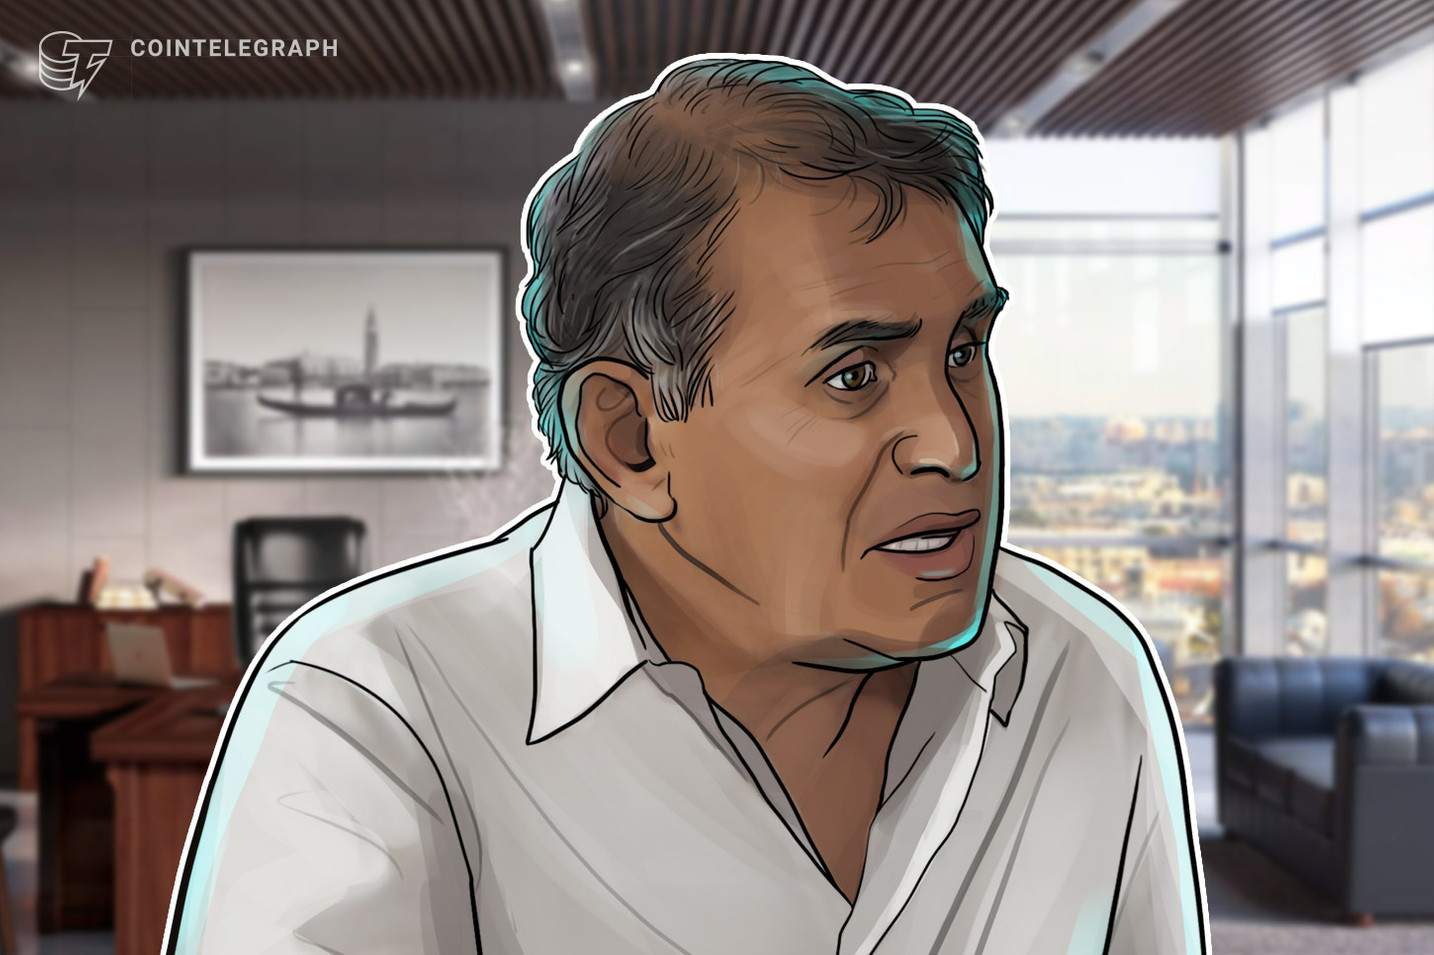 'Release the Tape You Coward' — Roubini Tells BitMEX CEO After Debate